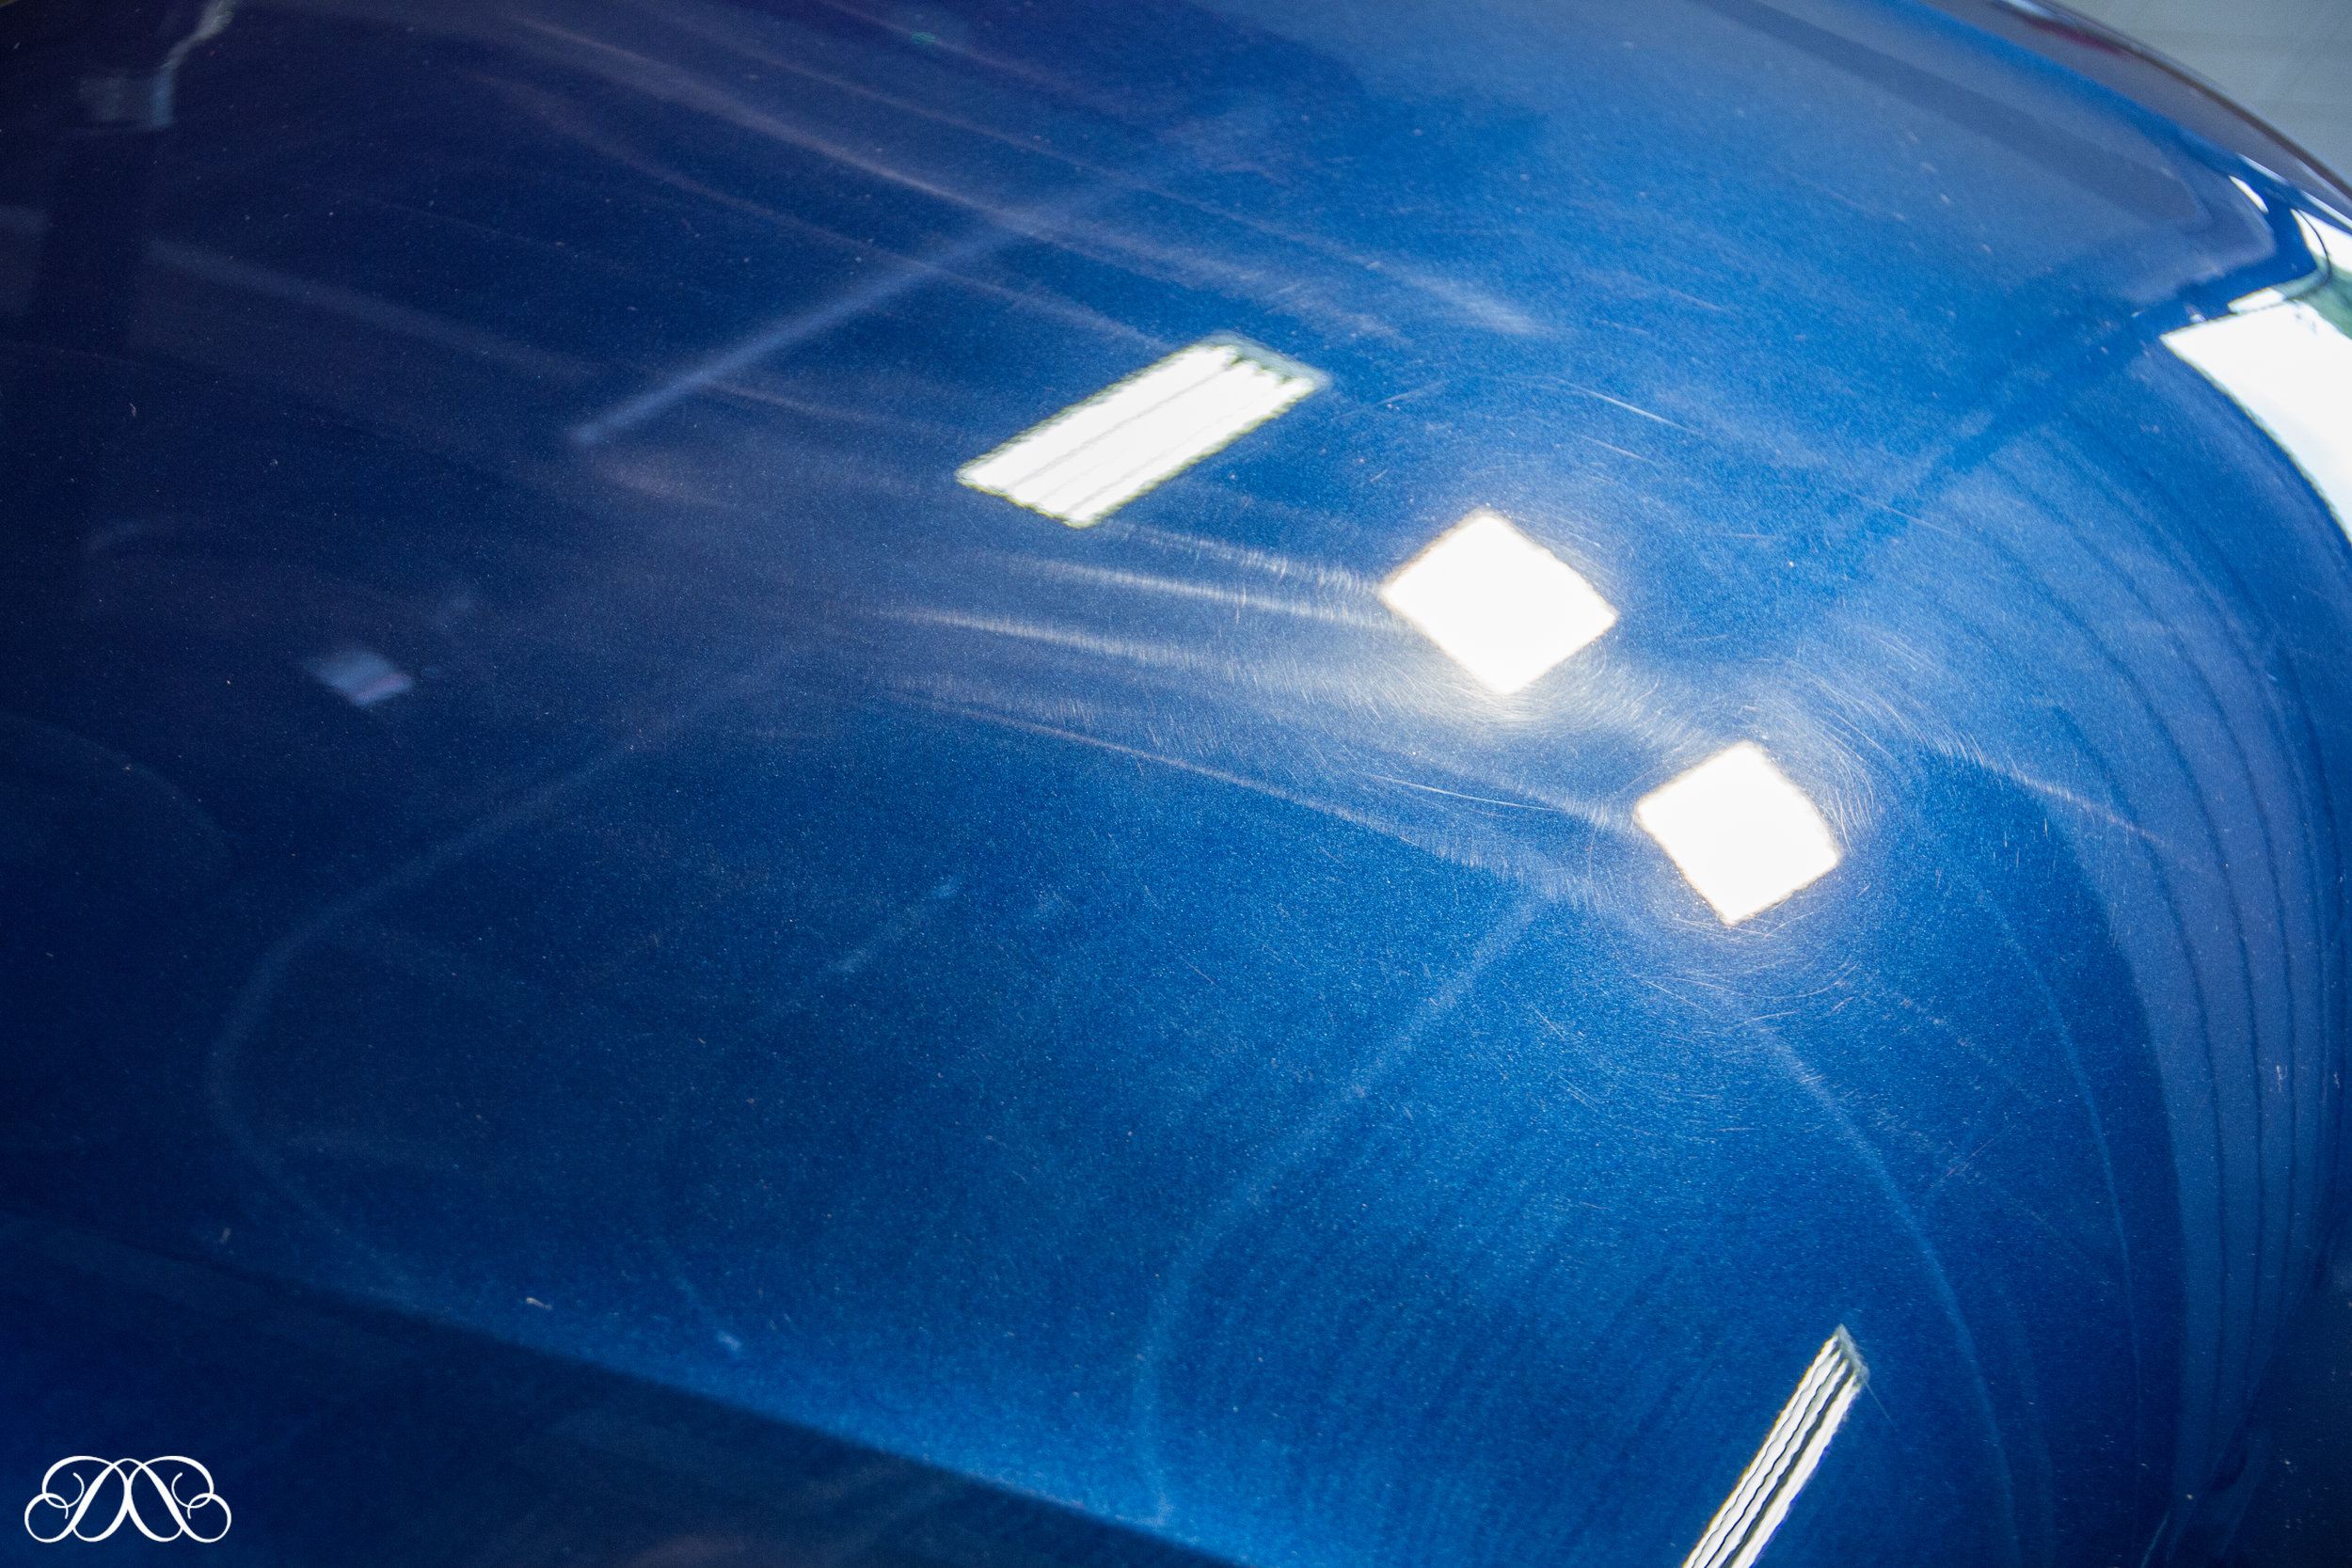 Trails left behind by Fleet Valeters at Audi Main Dealer when they attempted to remove a mark on the bonnet.